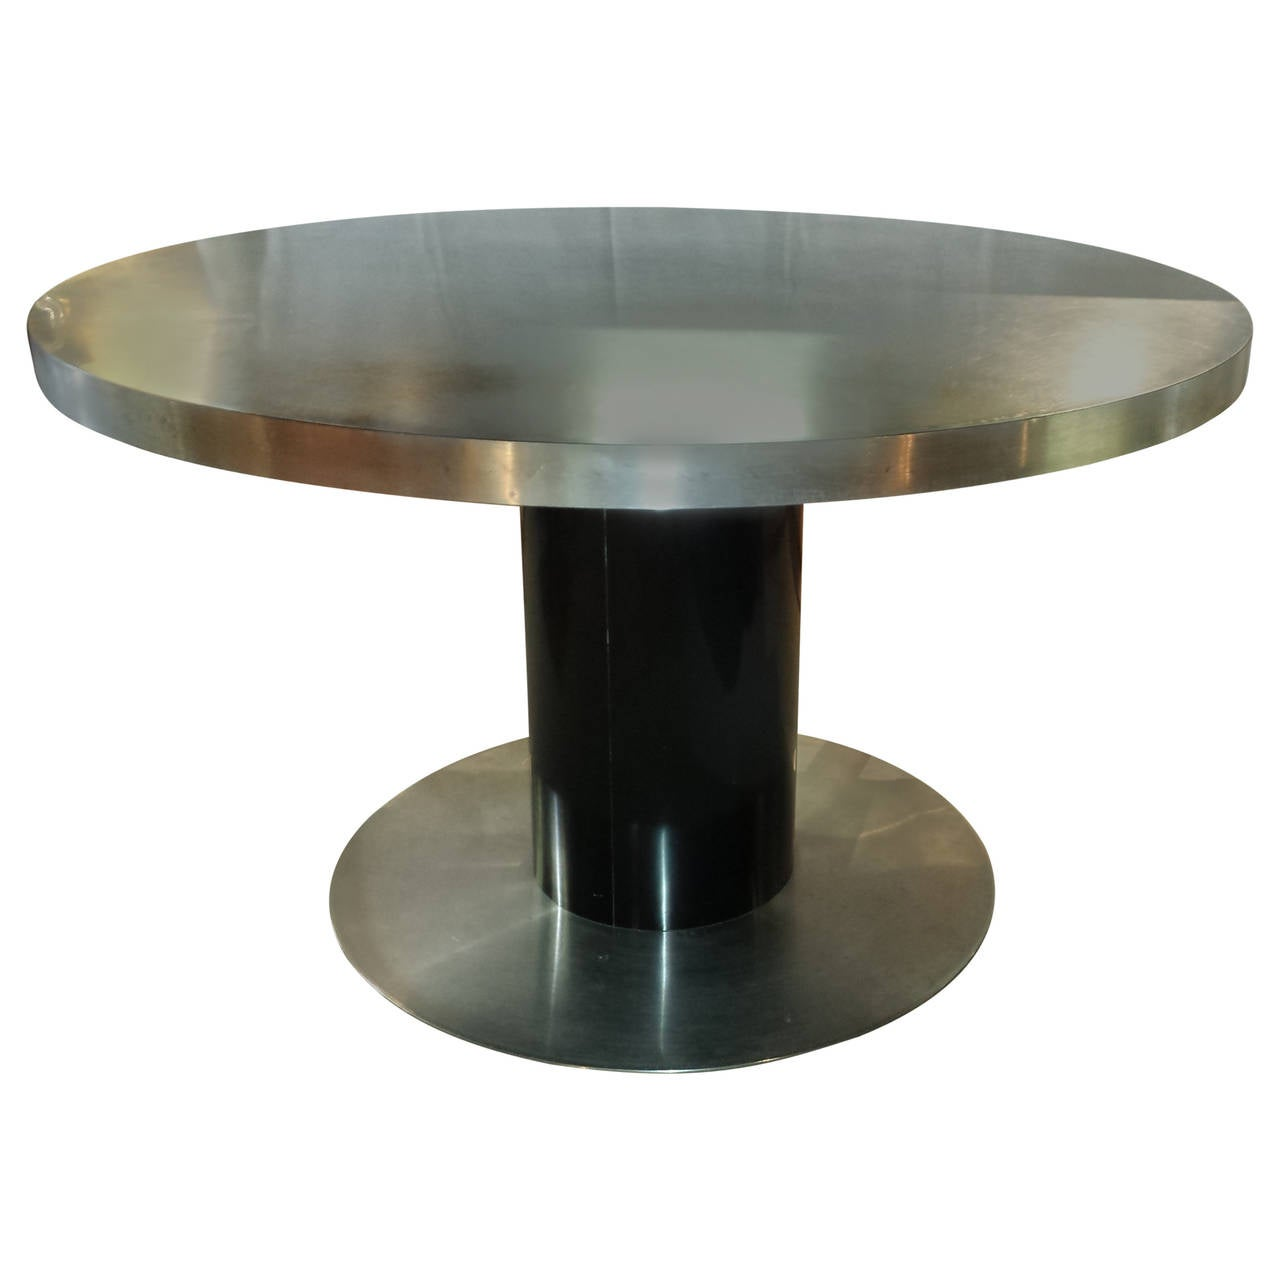 Mid century italian designed table by willy rizzo in black for Table willy rizzo